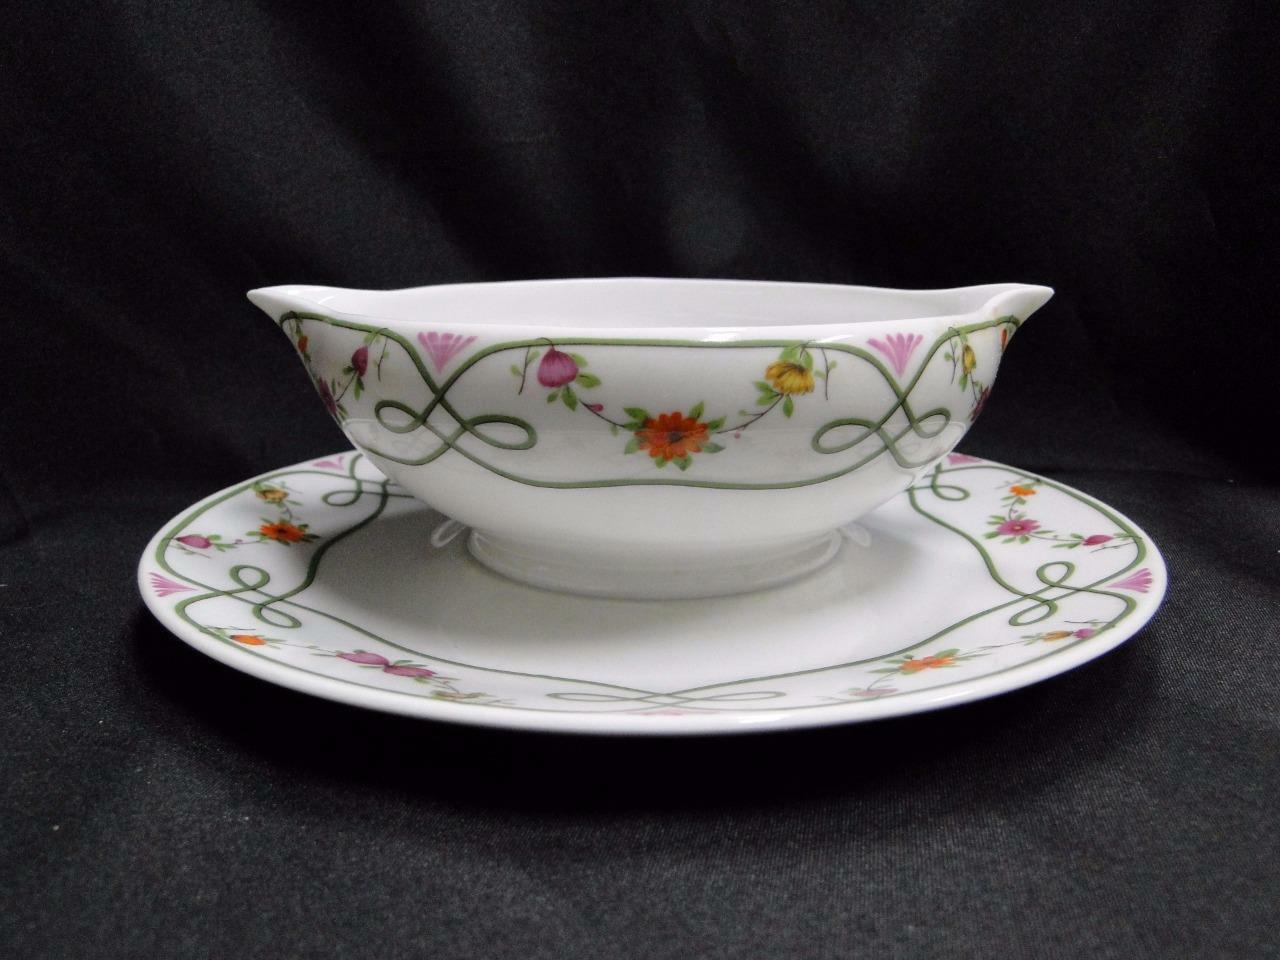 Raynaud Ceralene Guirlandes, Green Line, Flowers: Gravy Boat w/ Attached Plate